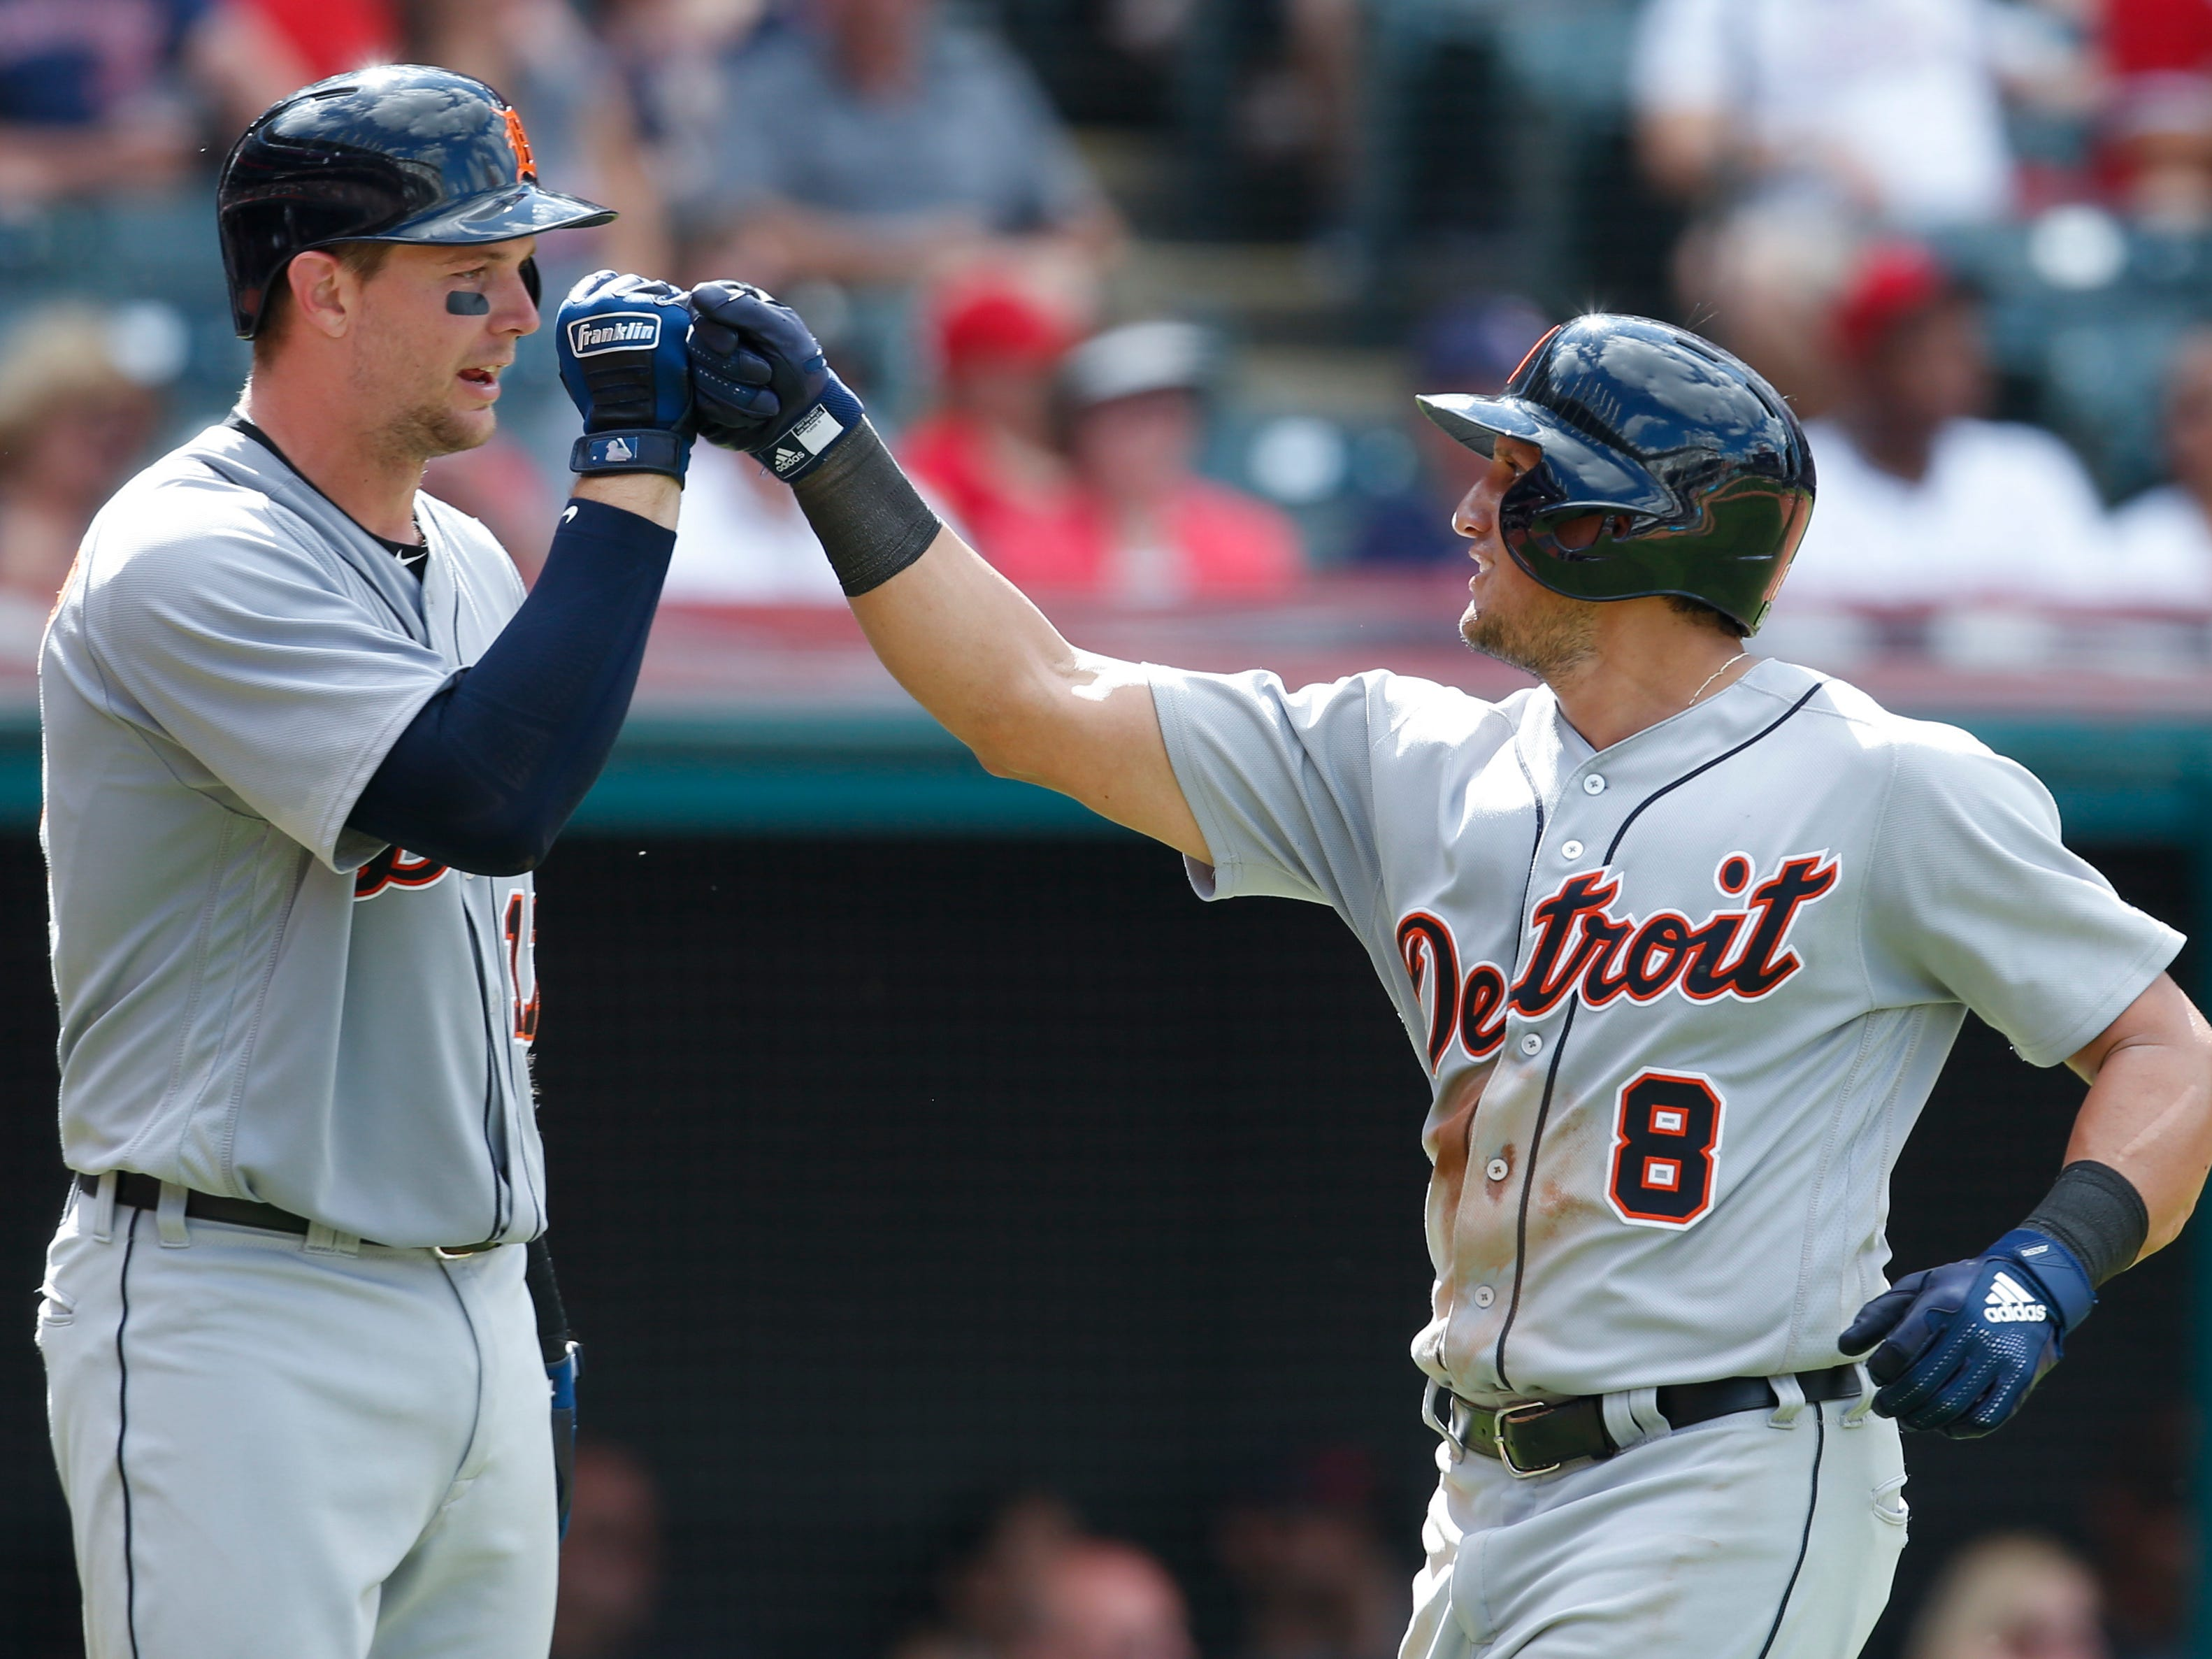 Detroit Tigers' Mikie Mahtook (8) celebrates with Grayson Greiner after hitting a solo home run off Cleveland Indians' Andrew Miller during the eighth inning.